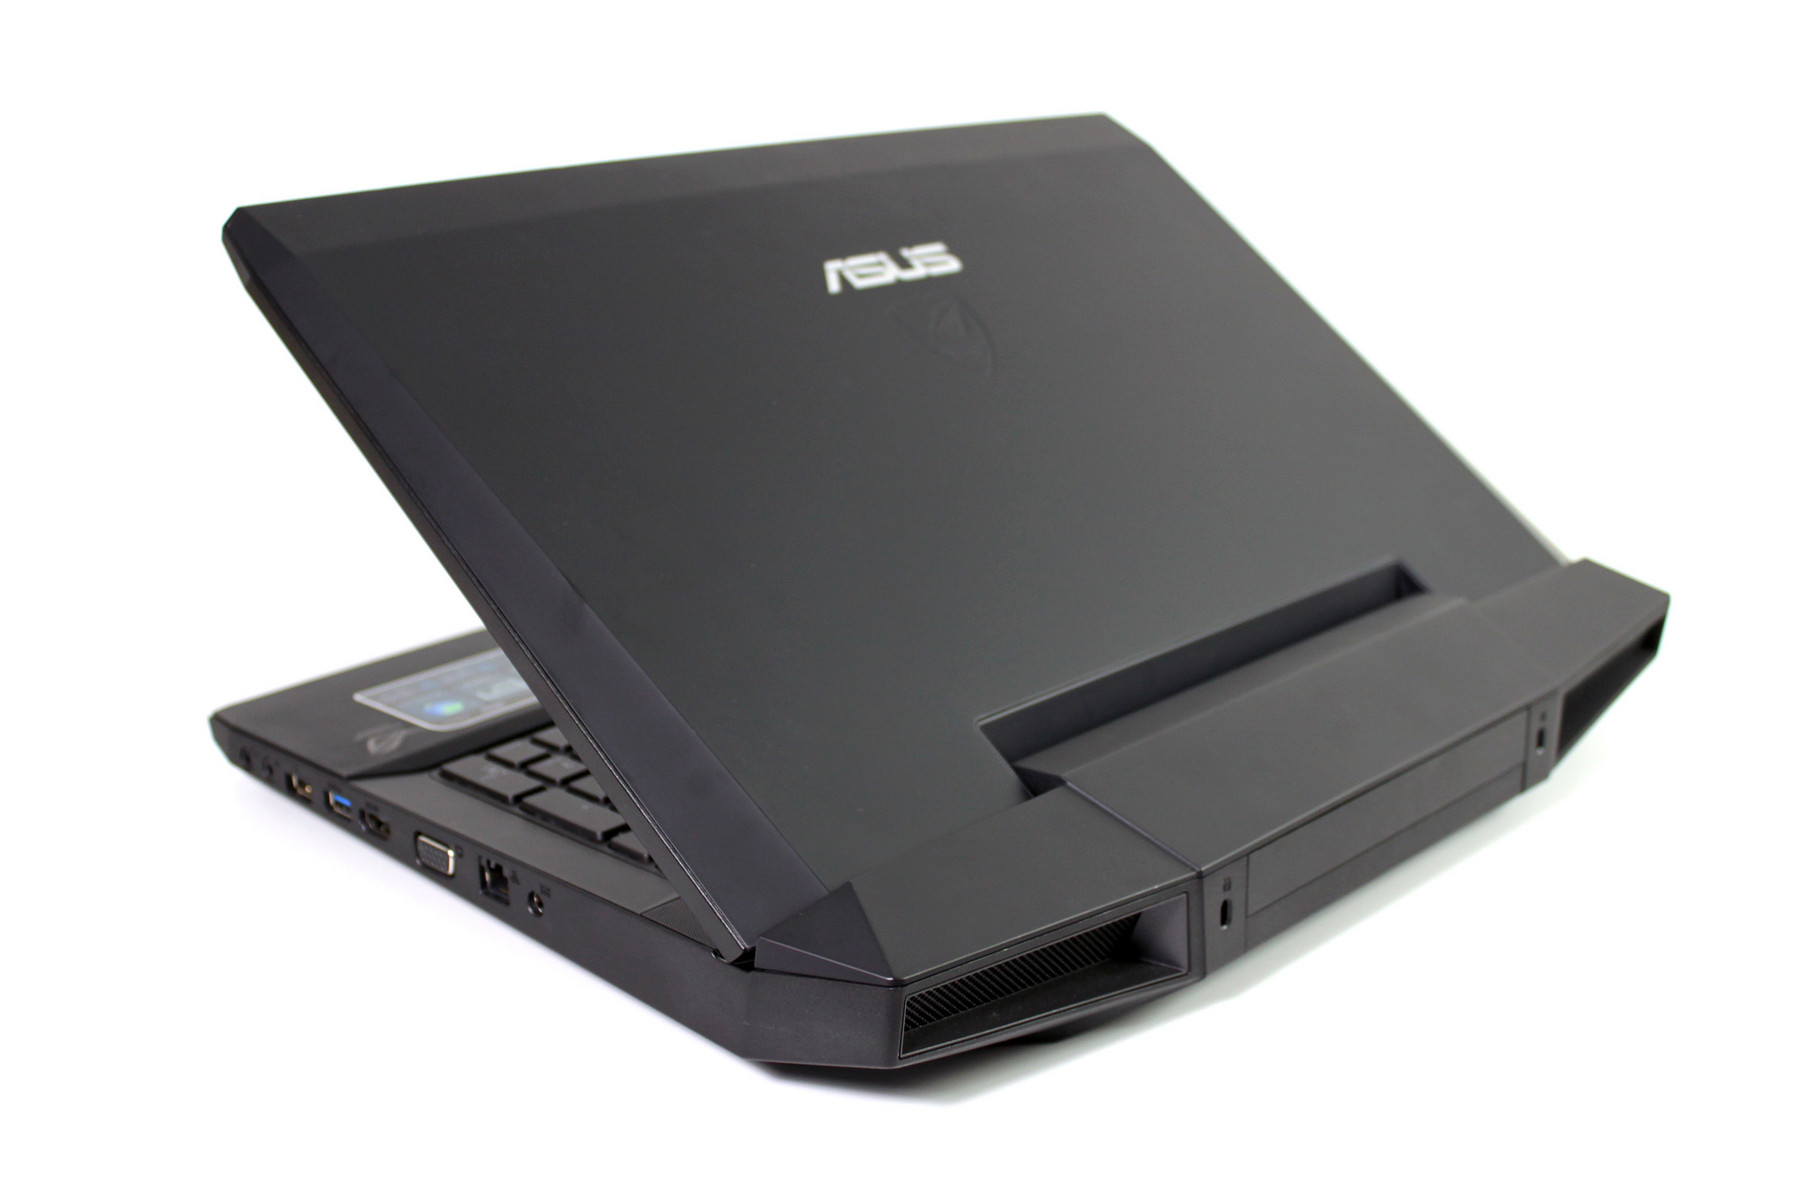 ASUS G53JW NOTEBOOK NVIDIA STEREOSCOPIC 3D DRIVERS FOR WINDOWS MAC